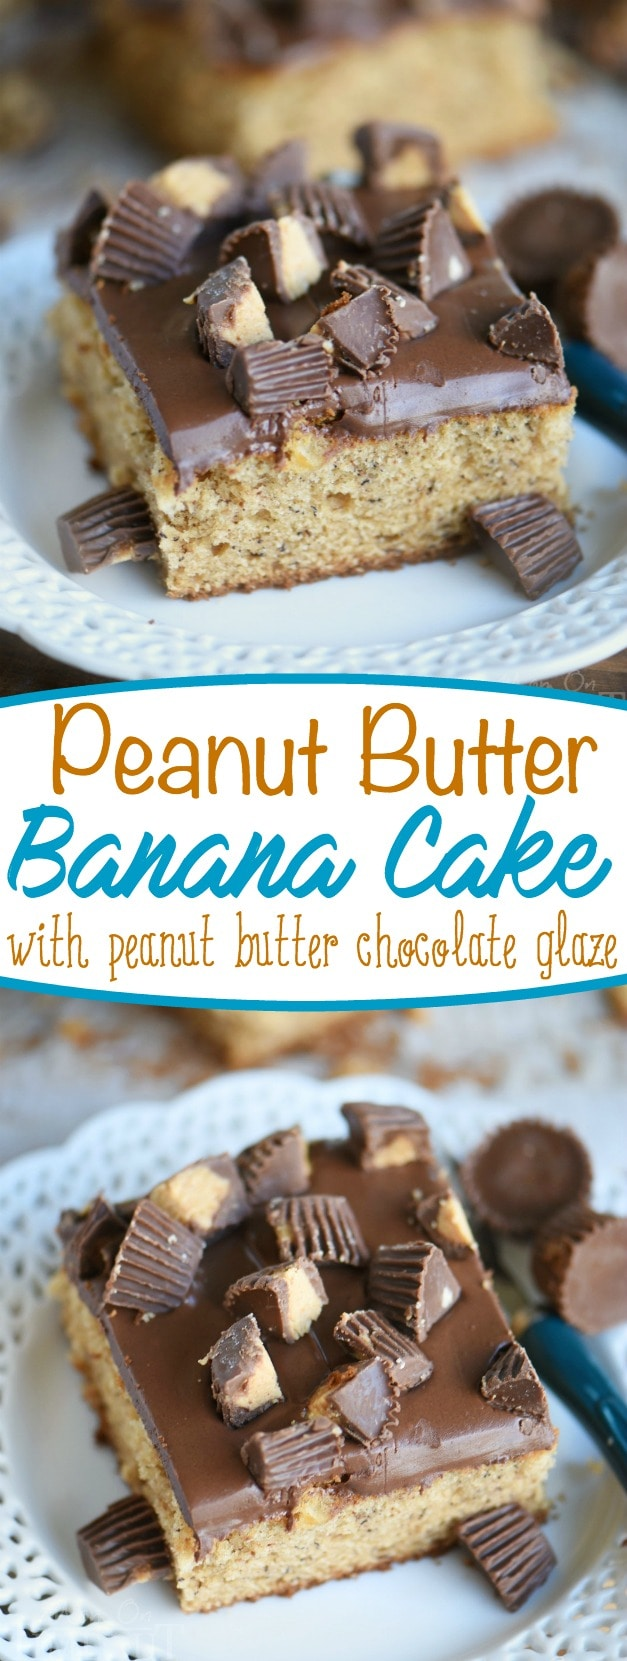 This easy Peanut Butter Banana Cake is topped with a peanut butter chocolate glaze and Reese's candy! An easy dessert that feeds a crowd! Great for parties and peanut butter lovers! // Mom On Timeout